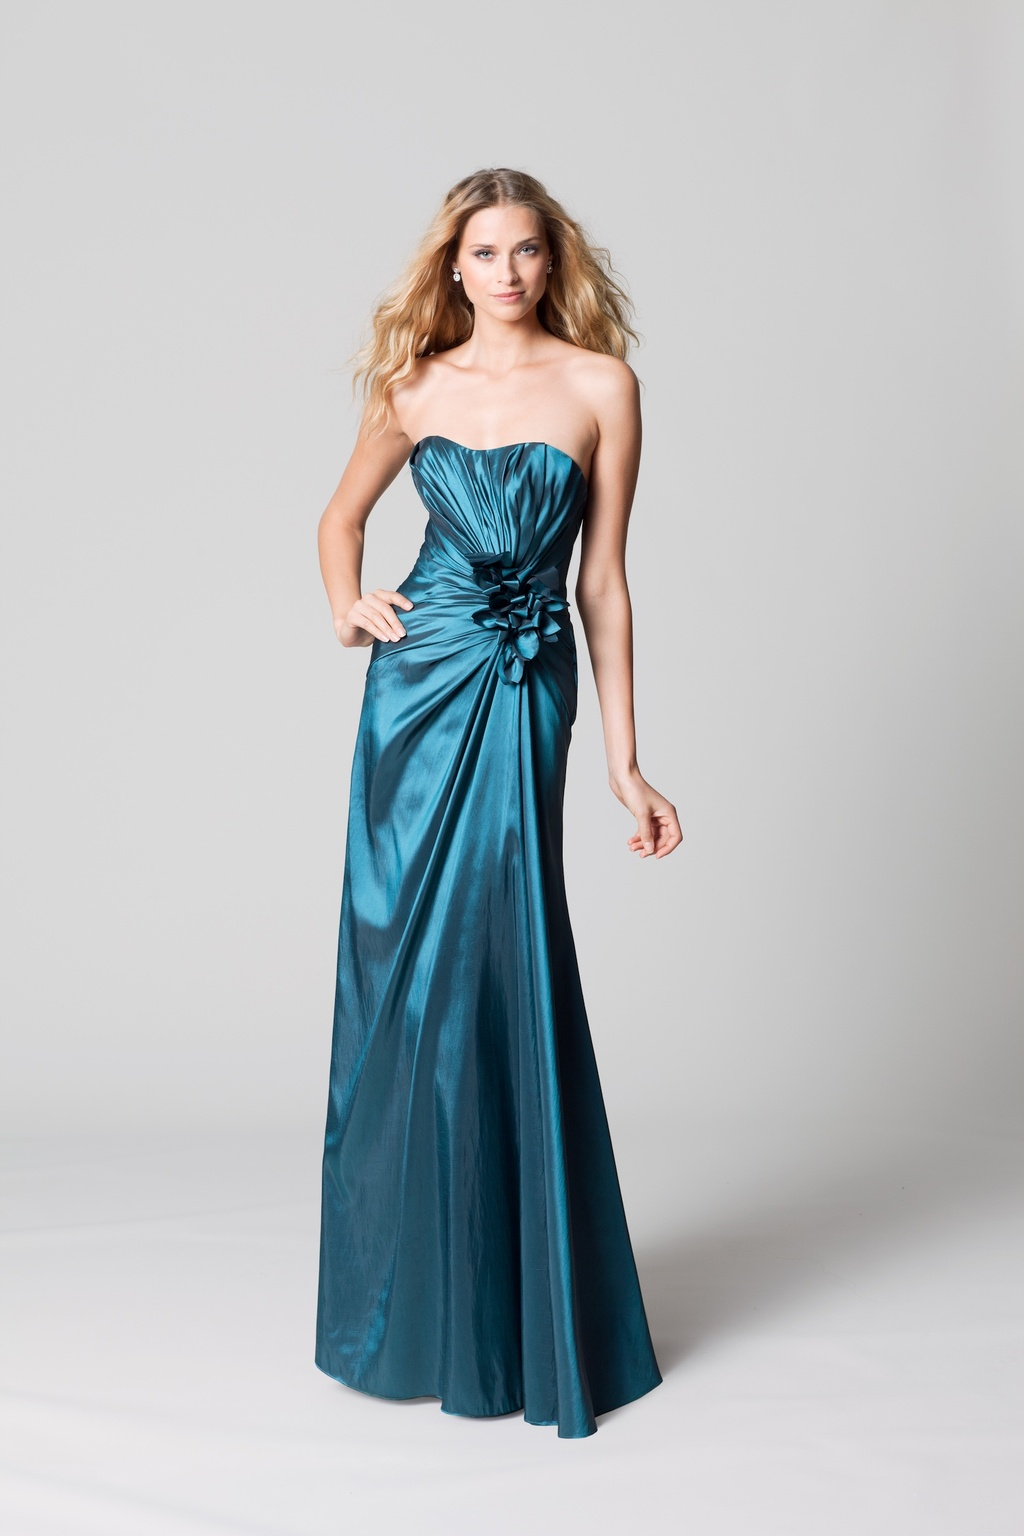 bridesmaids dresses Fall 2012 WTOO by Watters bridal party teal ...